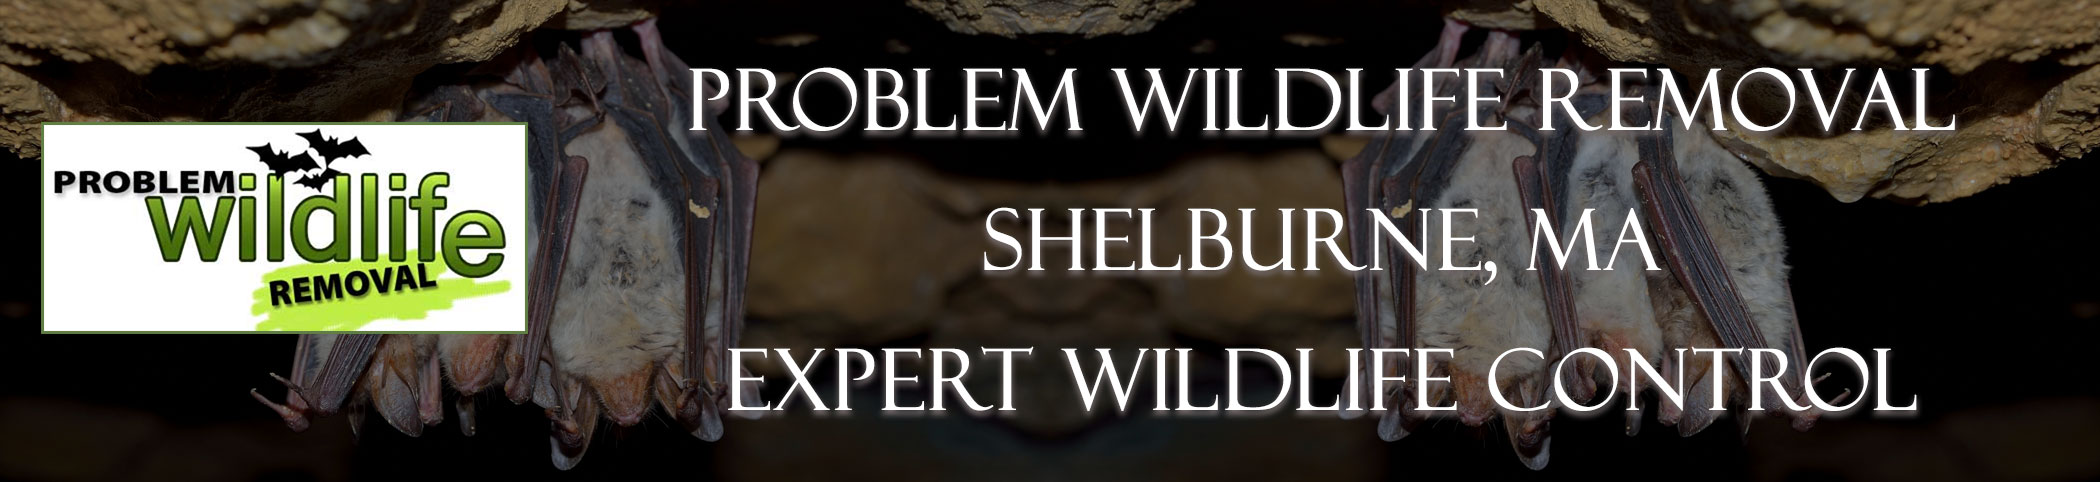 bat removal and bat exclusion by problem wildlife removal Shelburne Falls ma